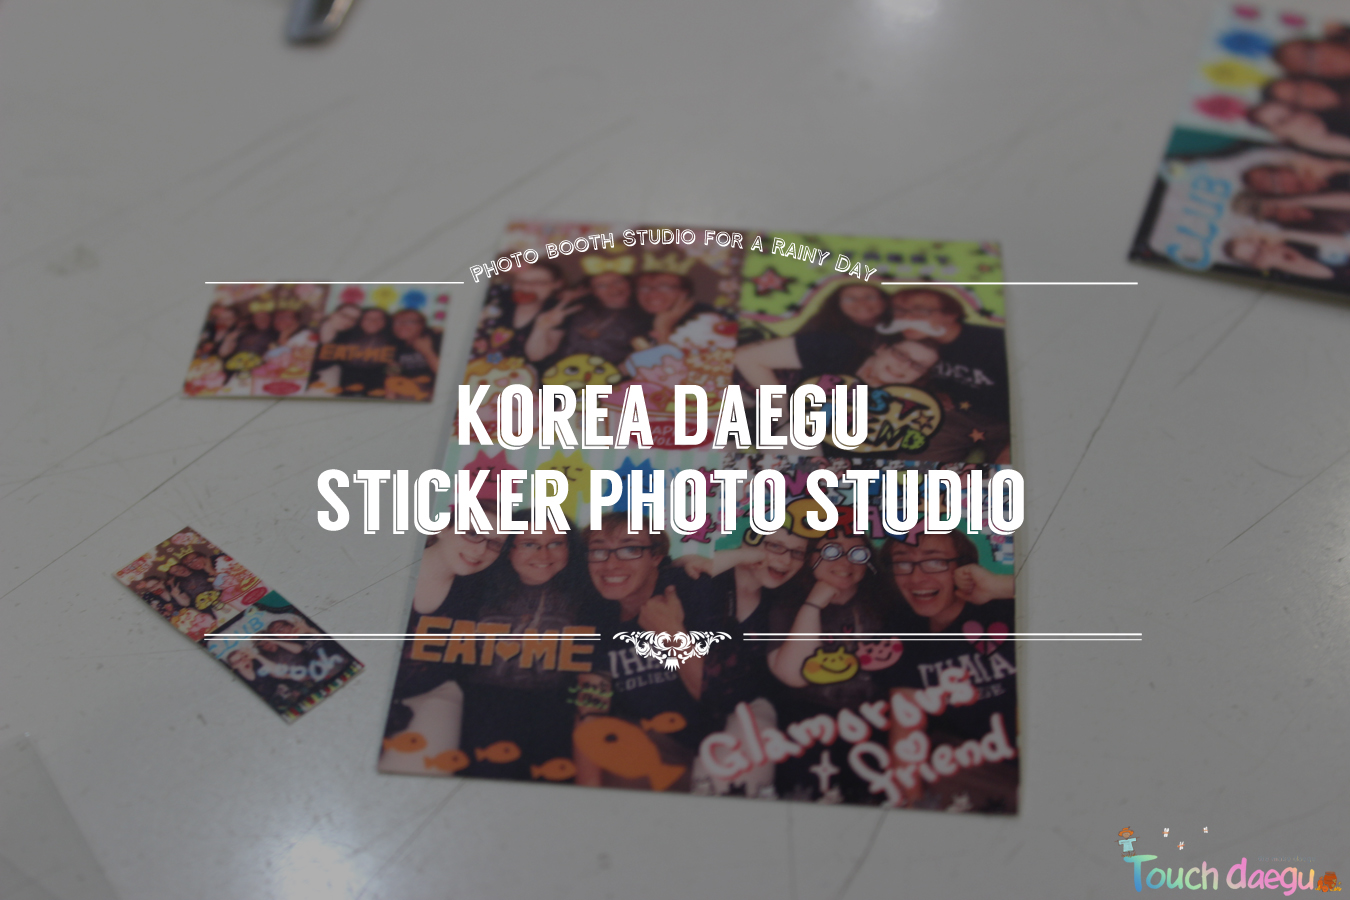 Korea Daegu Sticker Photo Studio in a rainy day